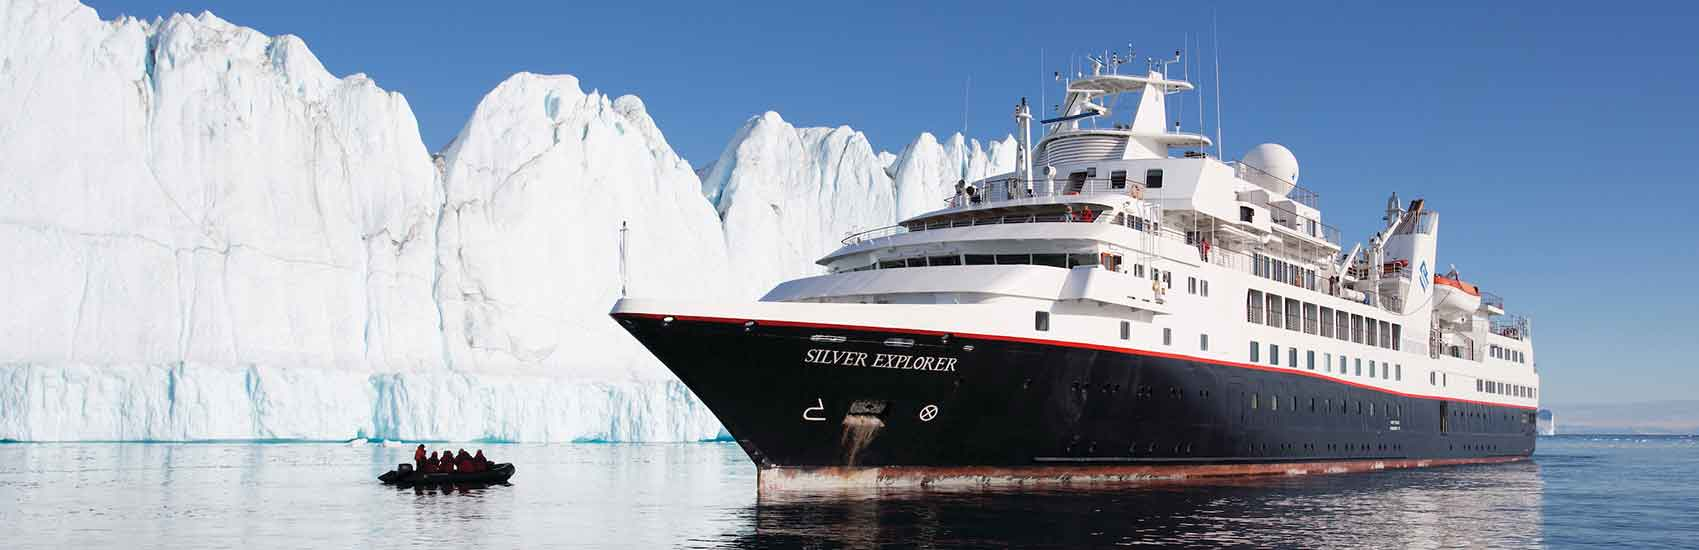 Exclusive Virtuoso Offer with Silversea Cruises 4